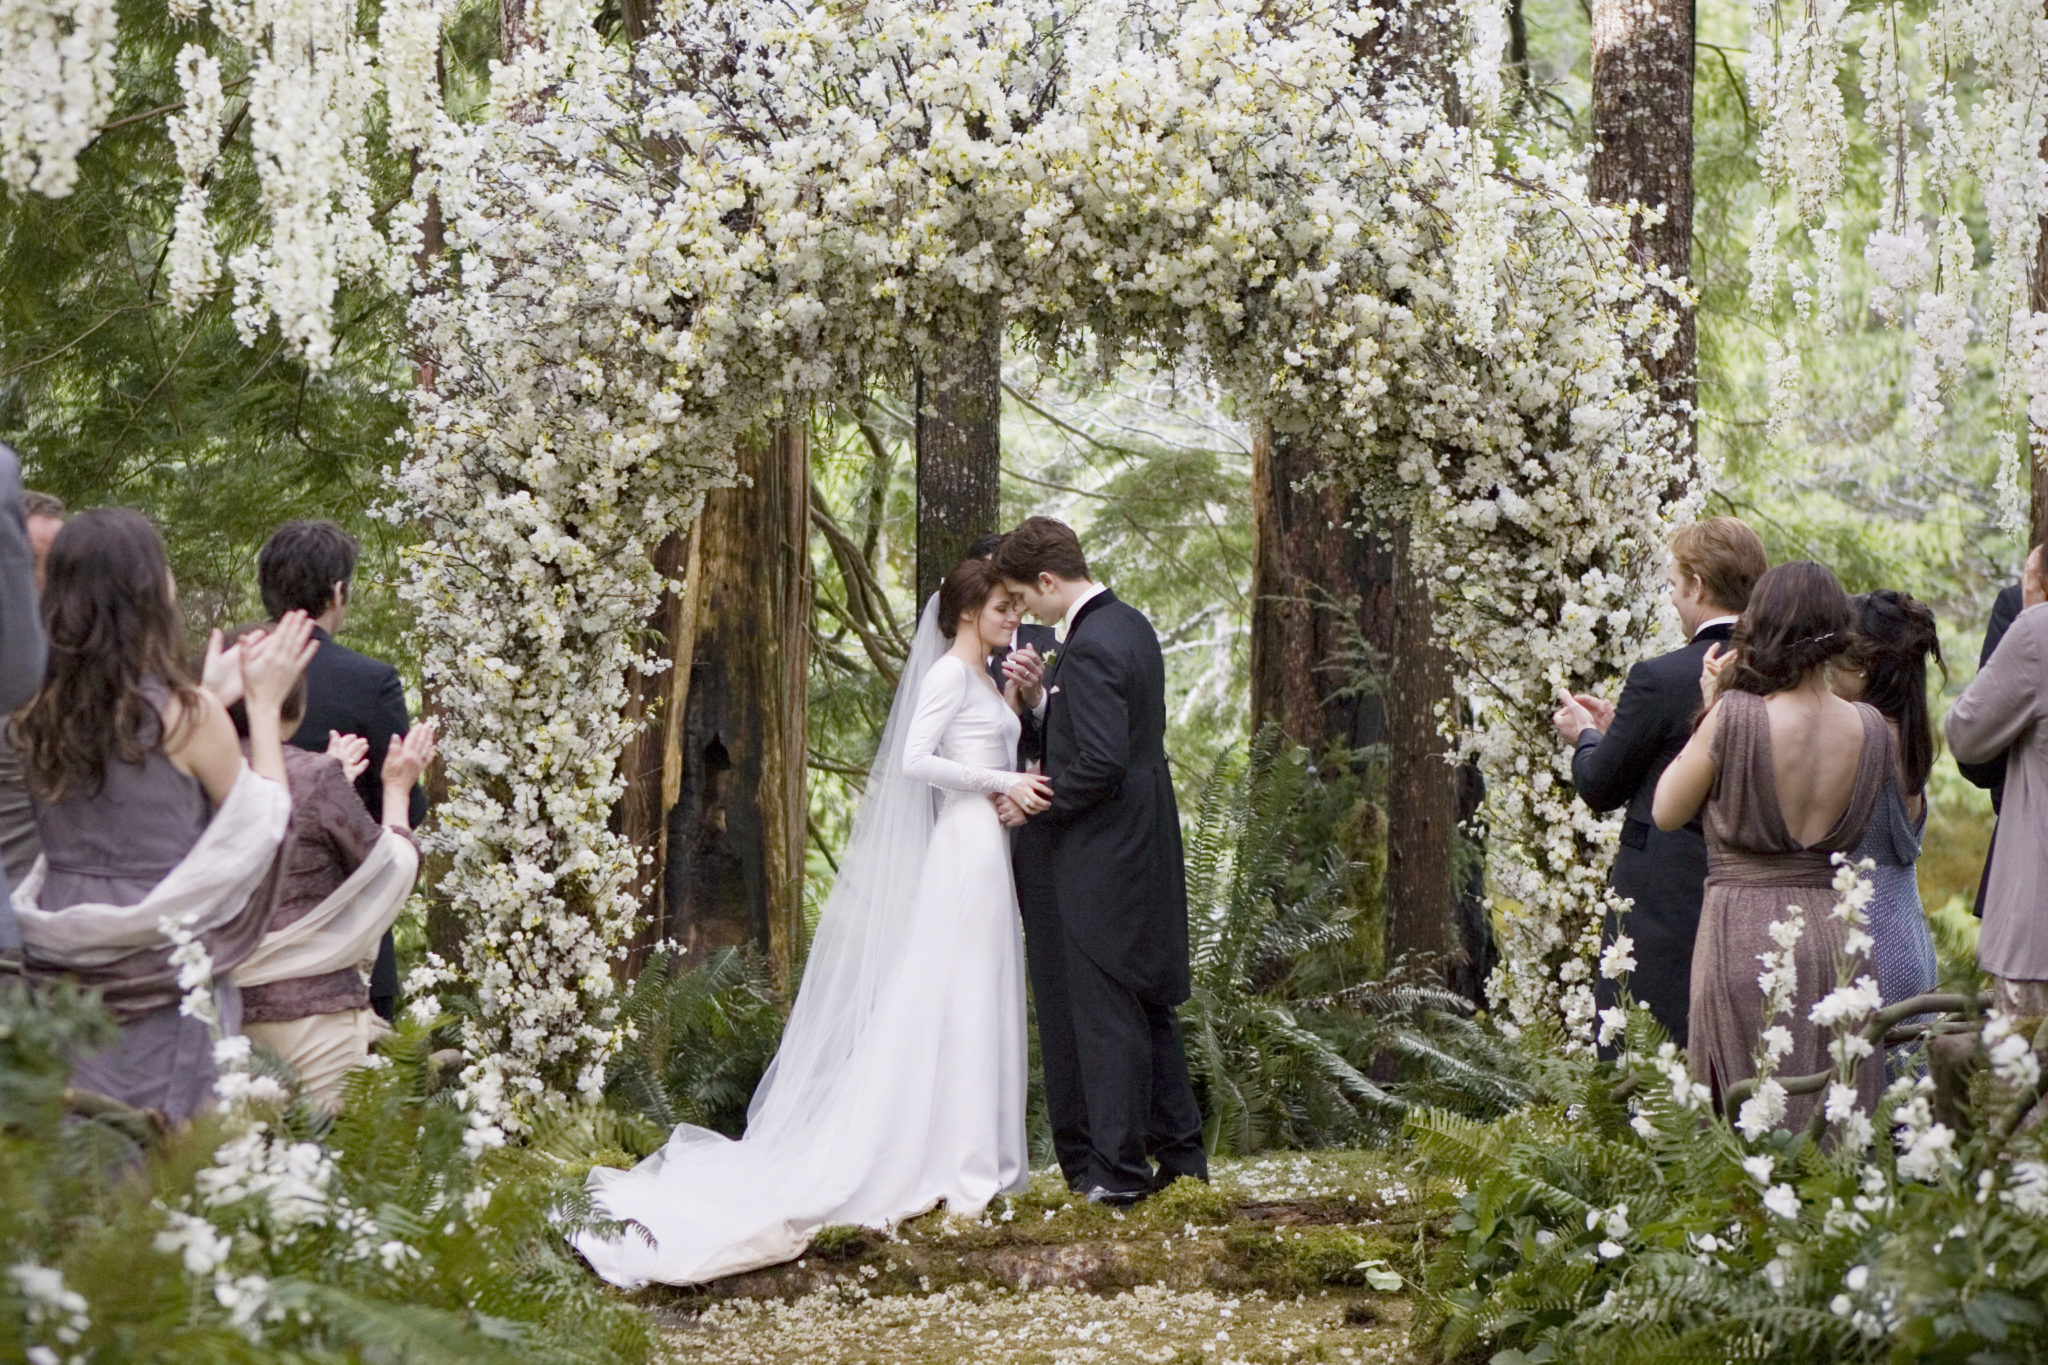 Ð?аÑ?Ñ?инки по запÑ?оÑ?Ñ? THE TWILIGHT SAGA: BREAKING DAWN wedding dress